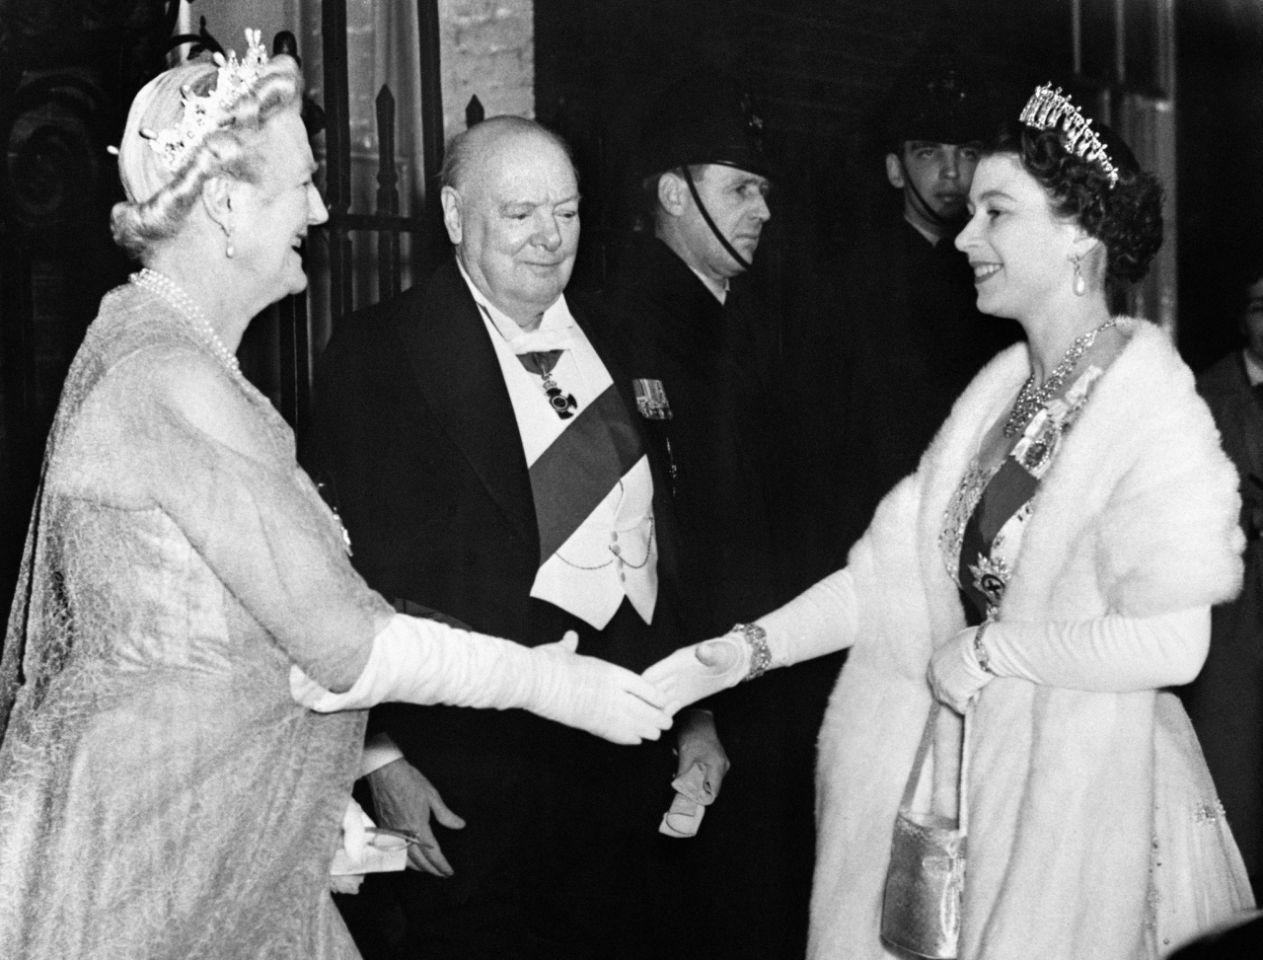 <p>The Queen was already a fan of fur throws, wearing one to meet Winston Churchill.<br /><i>[Photo: PA]</i> </p>